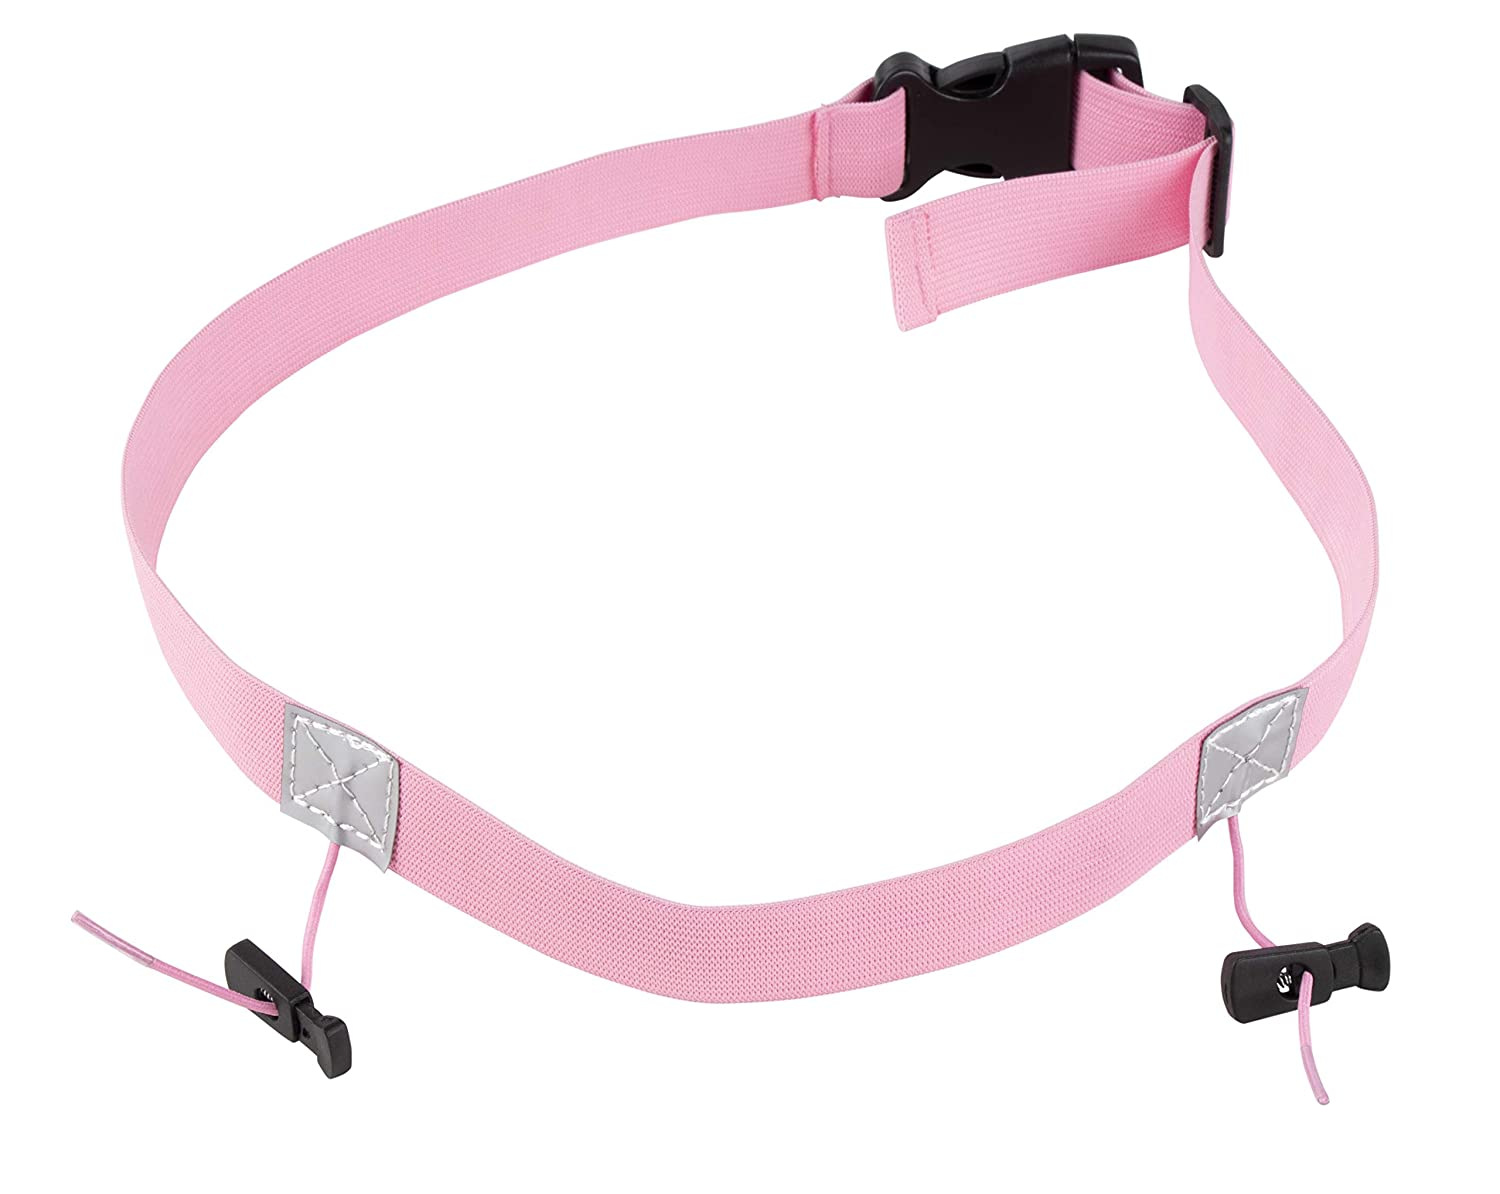 Bib Holders Pink and Blue Marathon 2-Pack Race Number Holder Racing Belt for Running Juvale Race Number Belt Cycling Triathlon 31.5 x 0.9 Inches Competitor Numbers